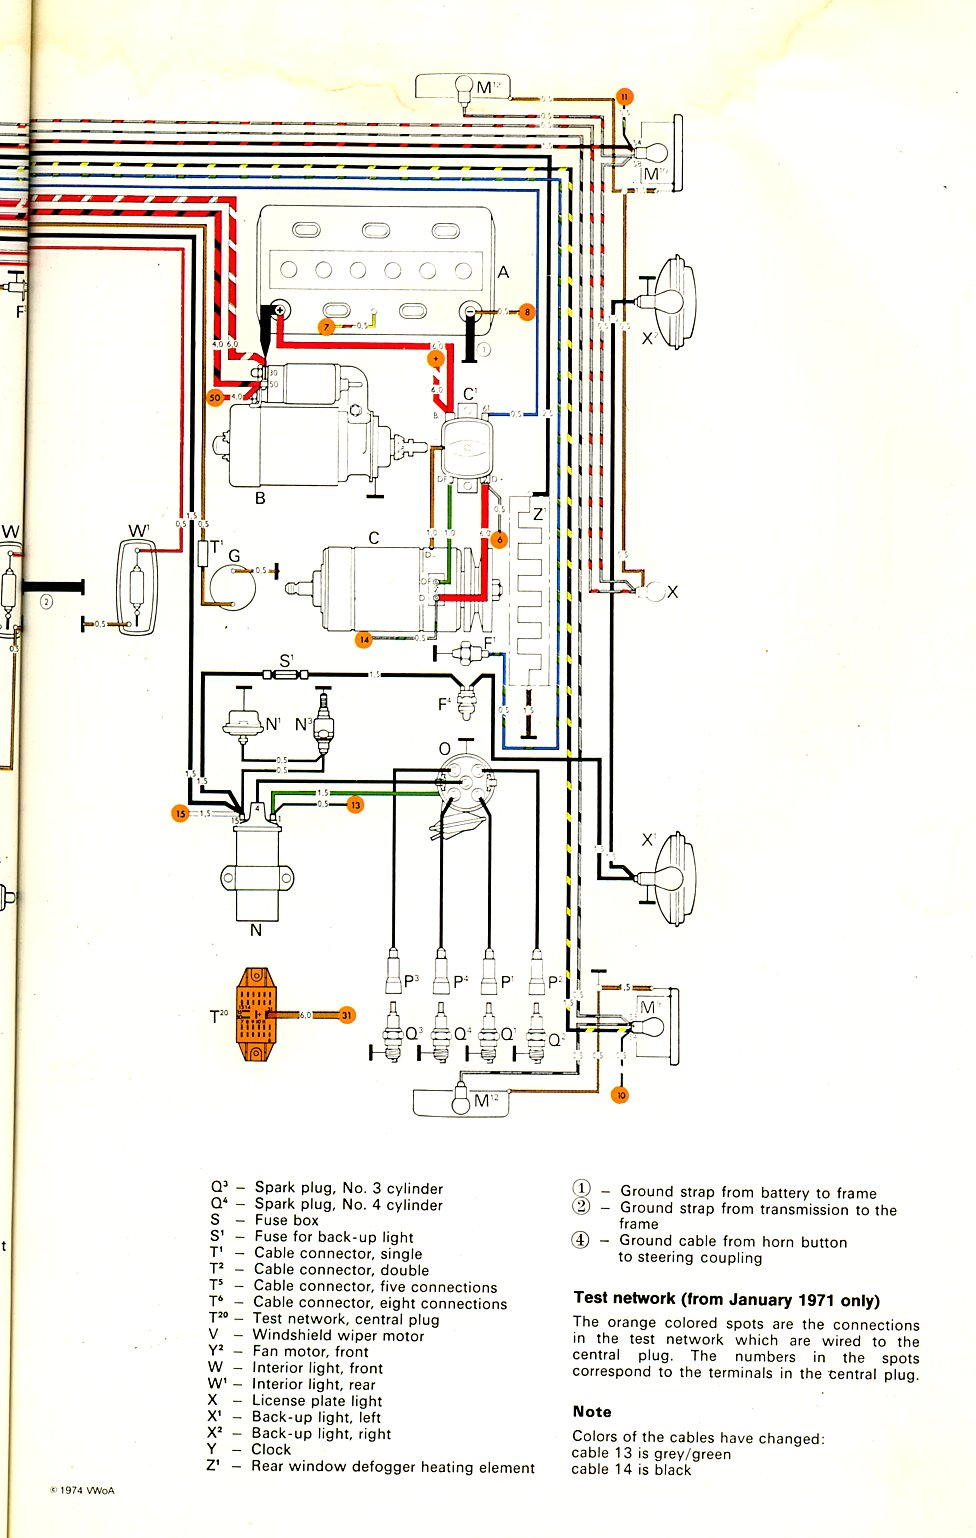 baybus_71b 1971 bus wiring diagram thegoldenbug com Volkswagen Type 2 Wiring Harness at gsmx.co